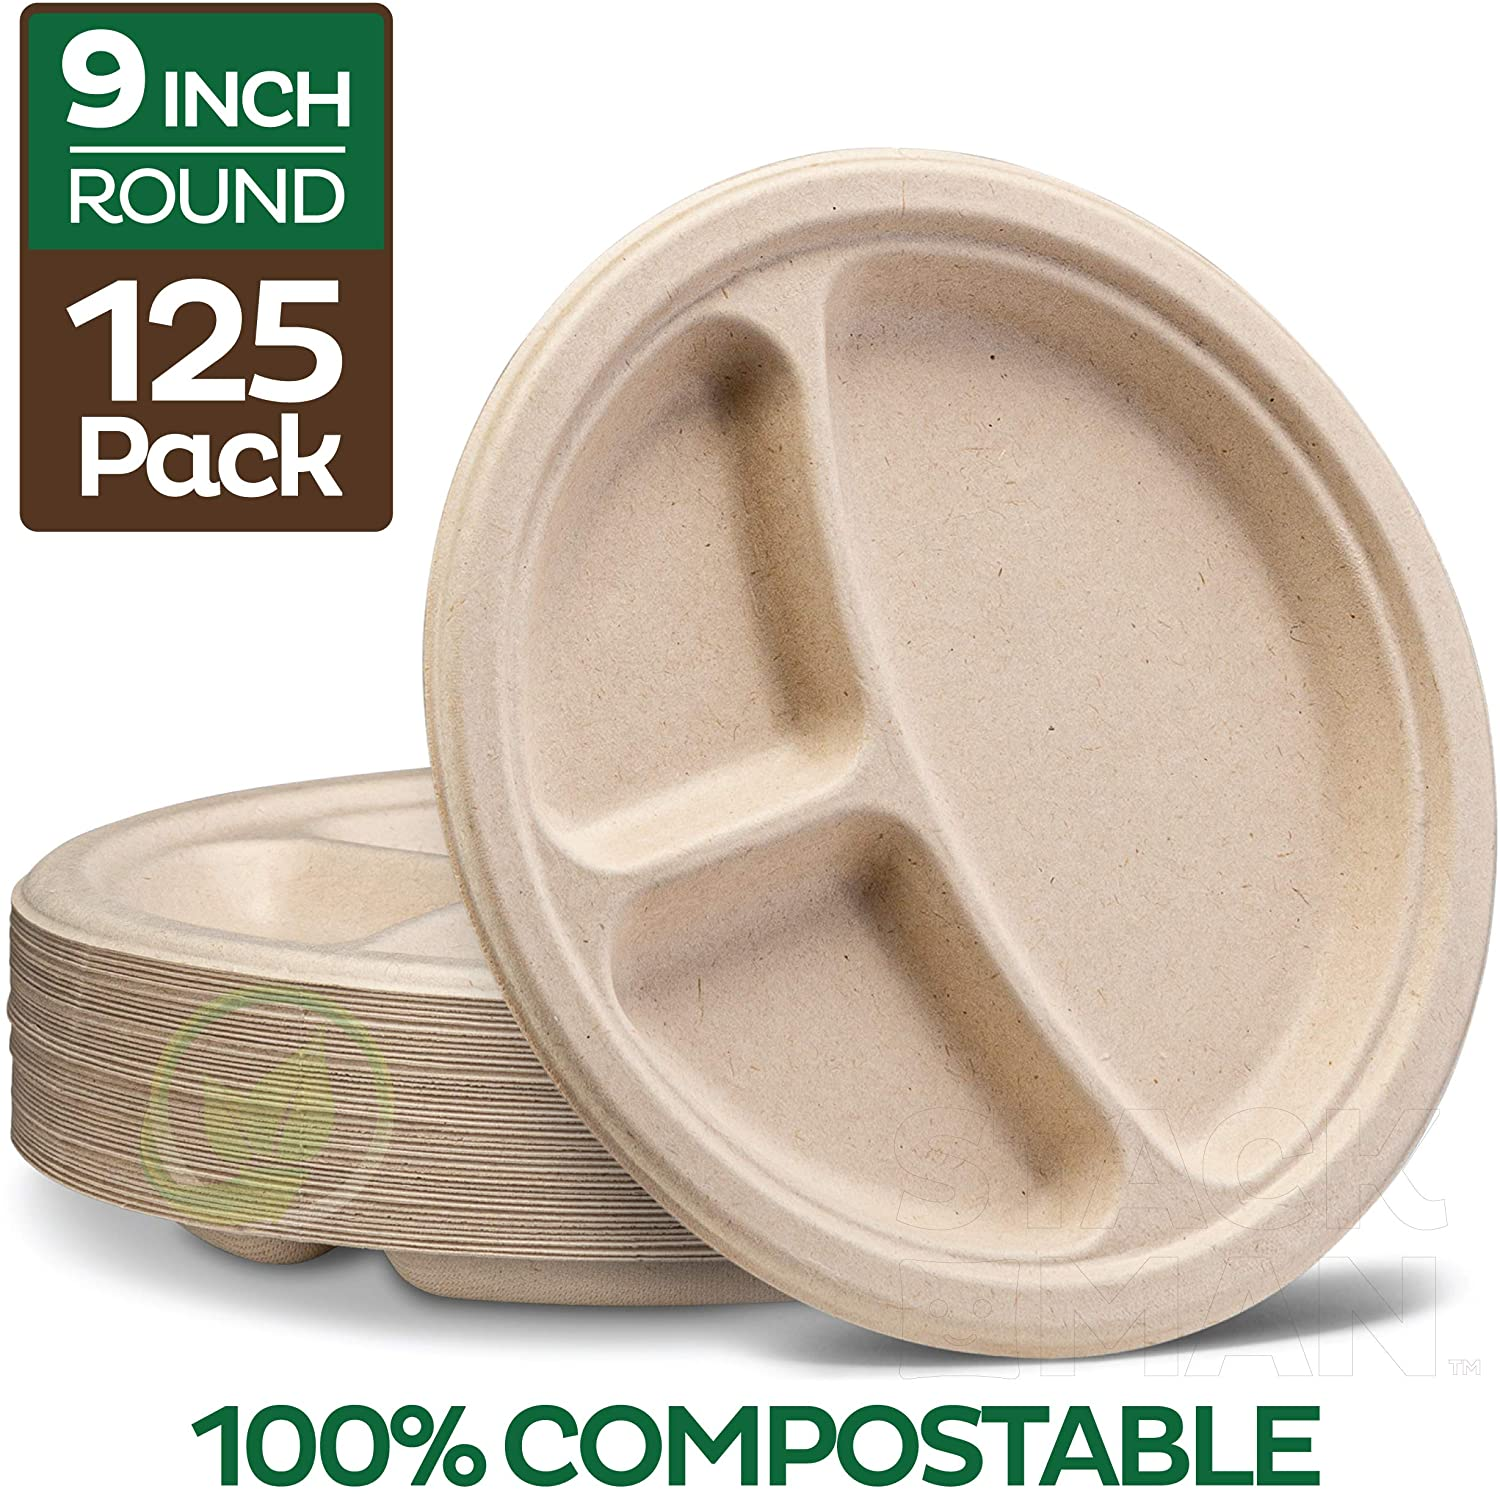 100% Compostable Paper Plates [9 inch - 125-Pack] 3 Compartment Disposable Plates Heavy-Duty Quality, Natural Bagasse Eco-Friendly Made of Sugar Cane Fibers, 9